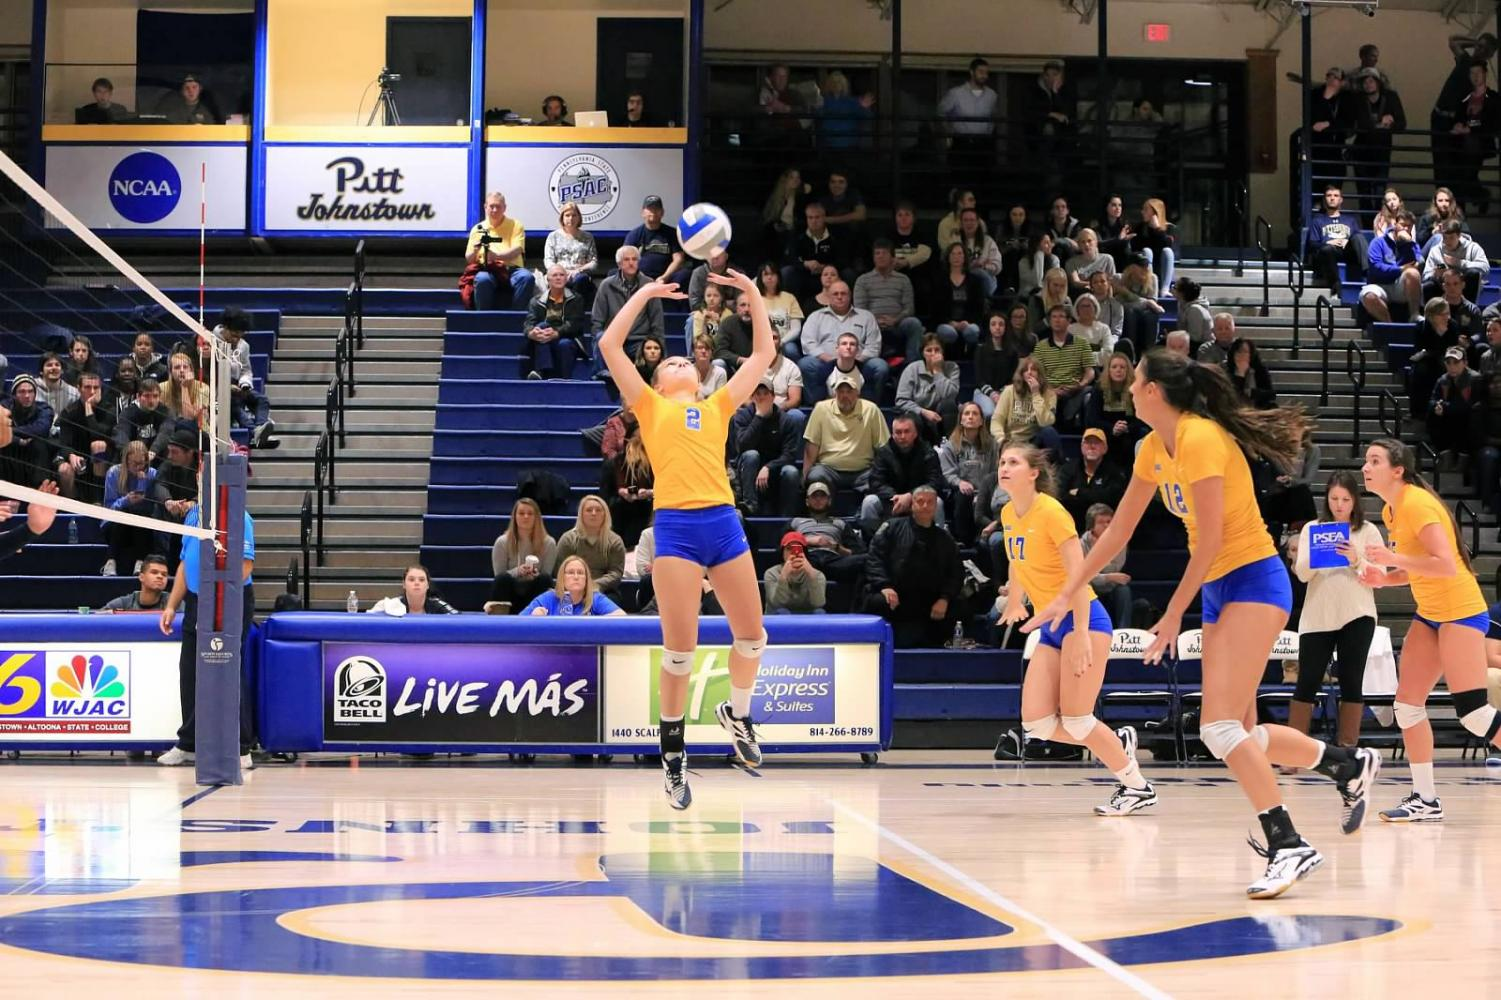 Sophomore J.C. Longeville (center, No. 2) sets the ball up for her teammates at the Sports Center during the conference quarterfinals last season.